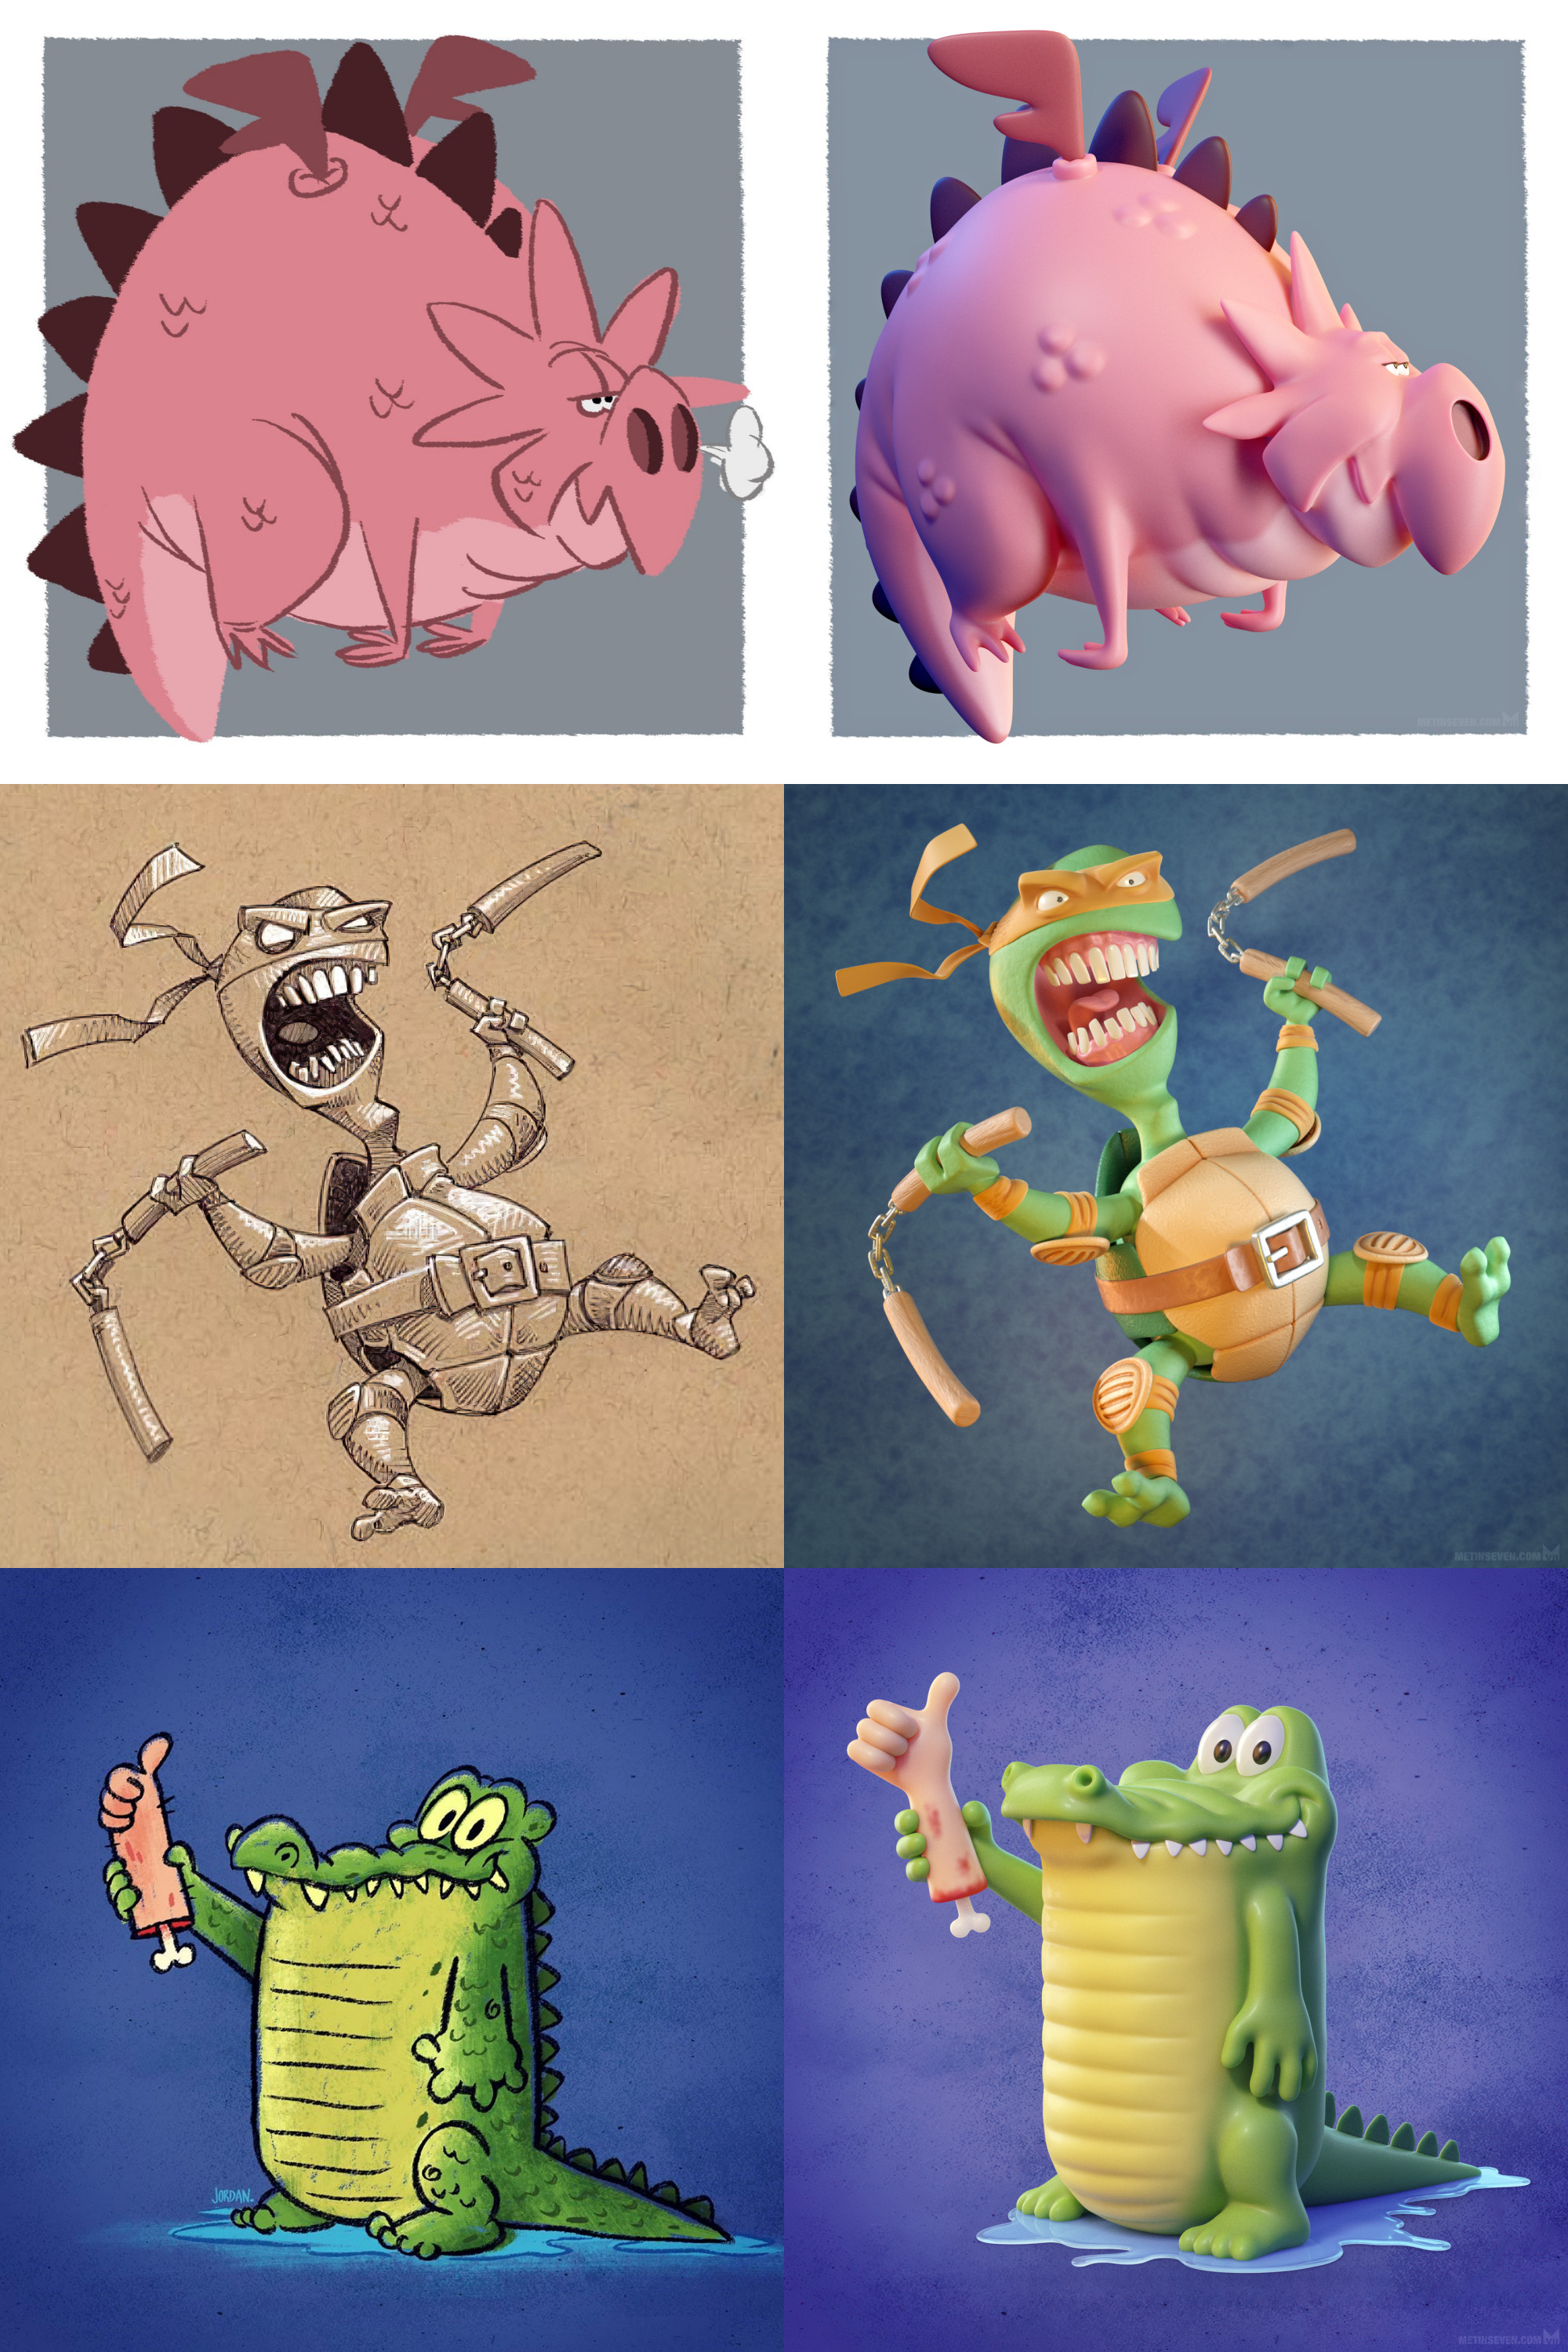 A side-by-side display of the drawn inspiration and my 3D interpretations | Credits for the sketches can be found throughout this page